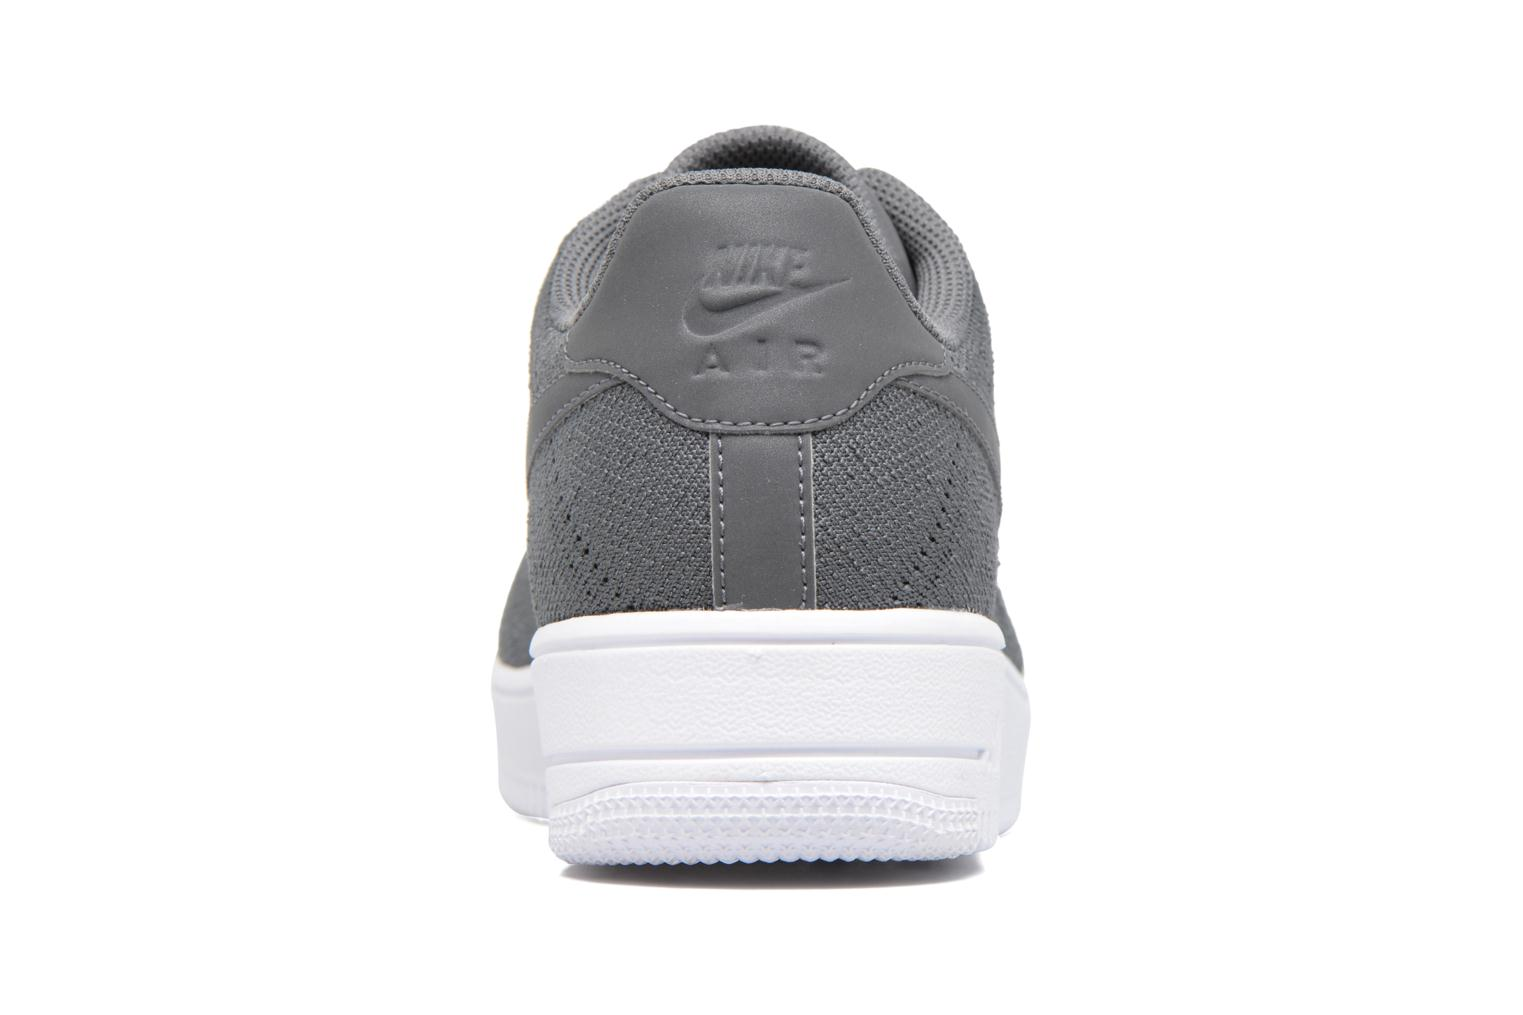 Baskets Nike Af1 Ultra Flyknit Low Gris vue droite